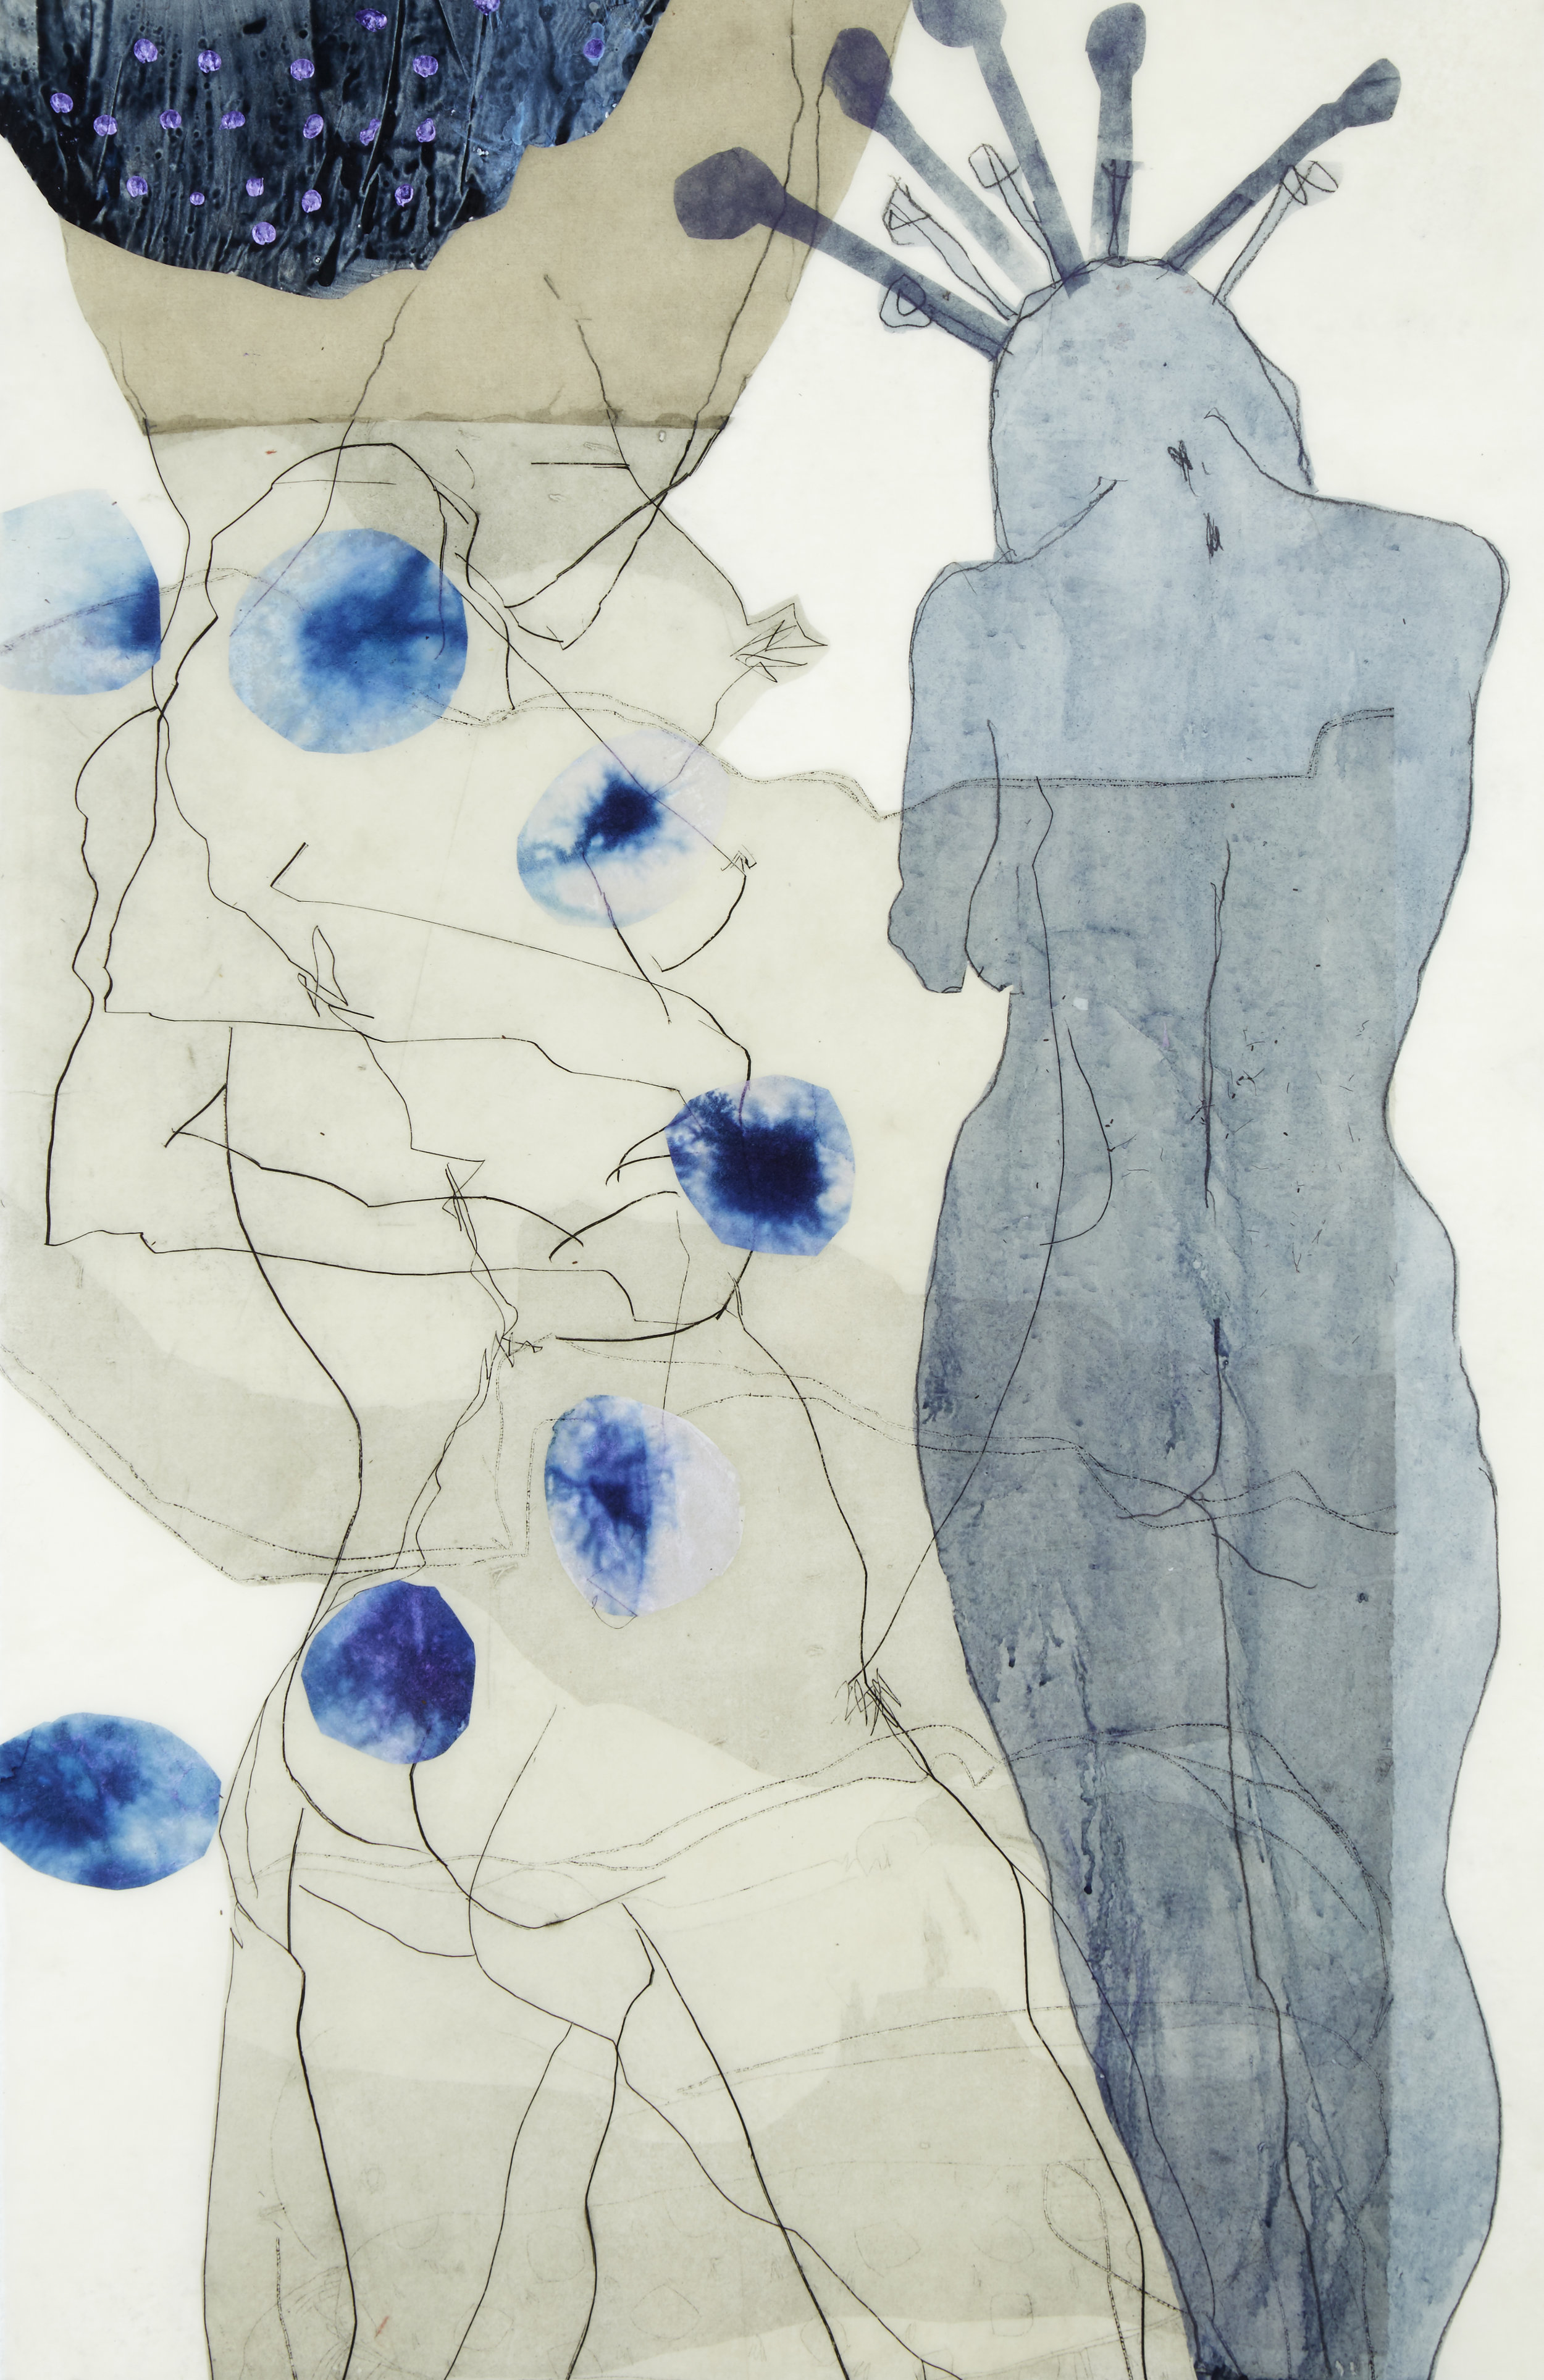 'Inanna' , 2015, encaustic, drawing, acrylic, etching, collage on Kozo paper. Framed size: 63.5x91.5cm